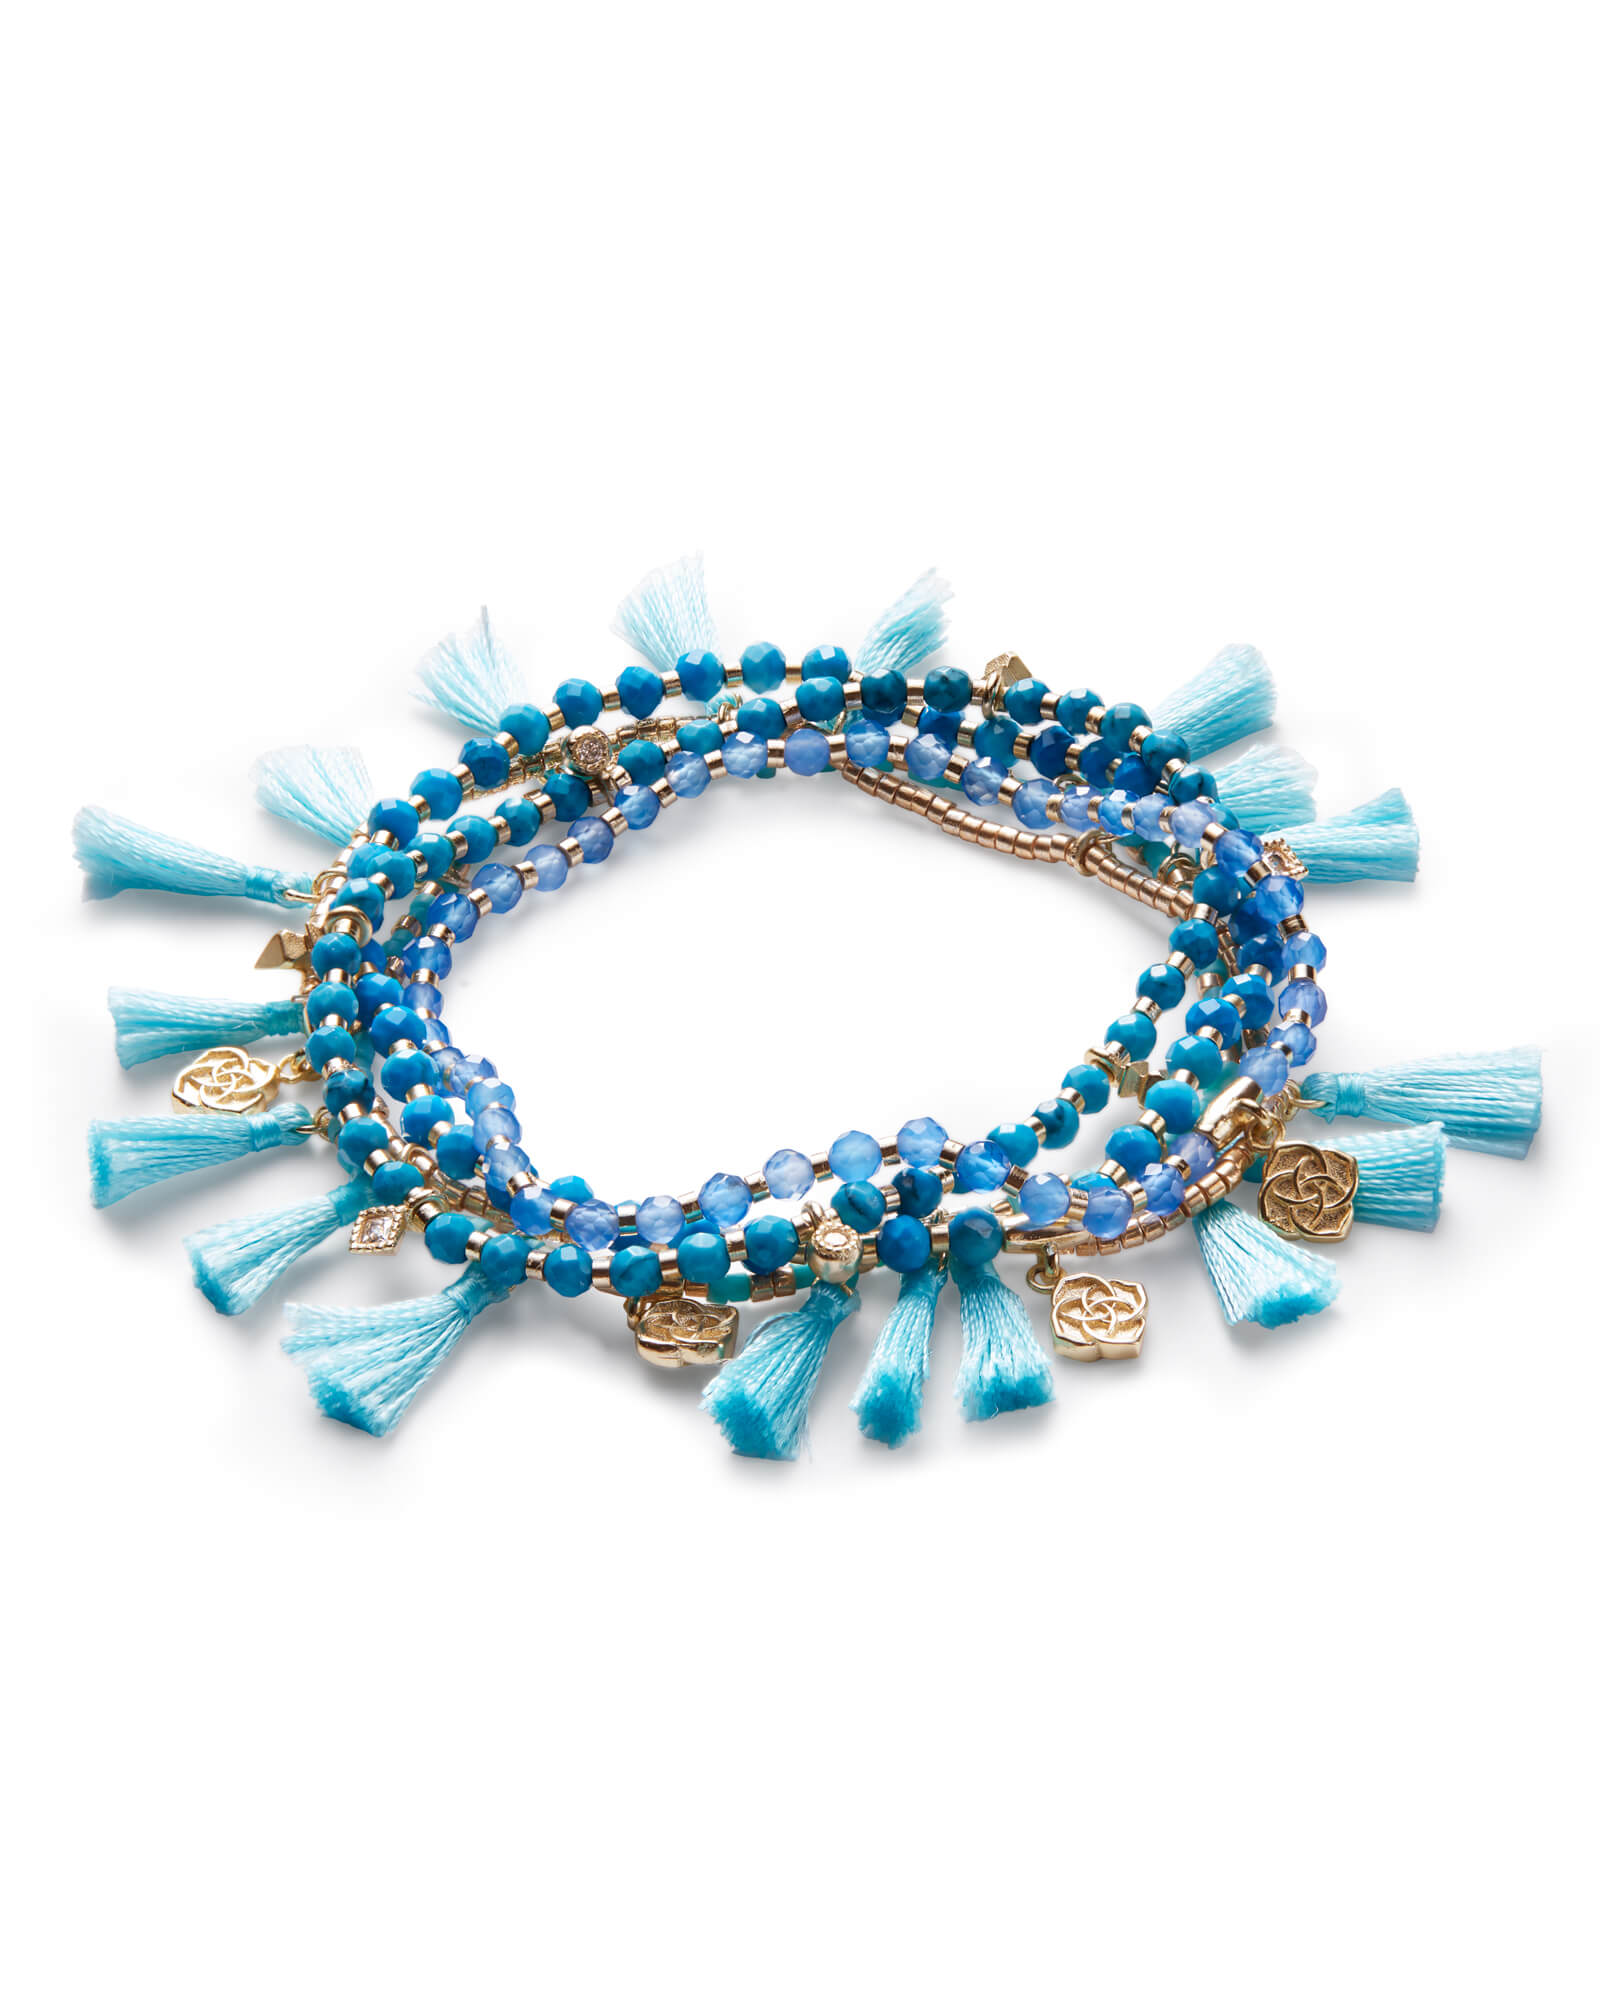 Julie Gold Stretch Bracelet Set In Aqua Howlite Mix